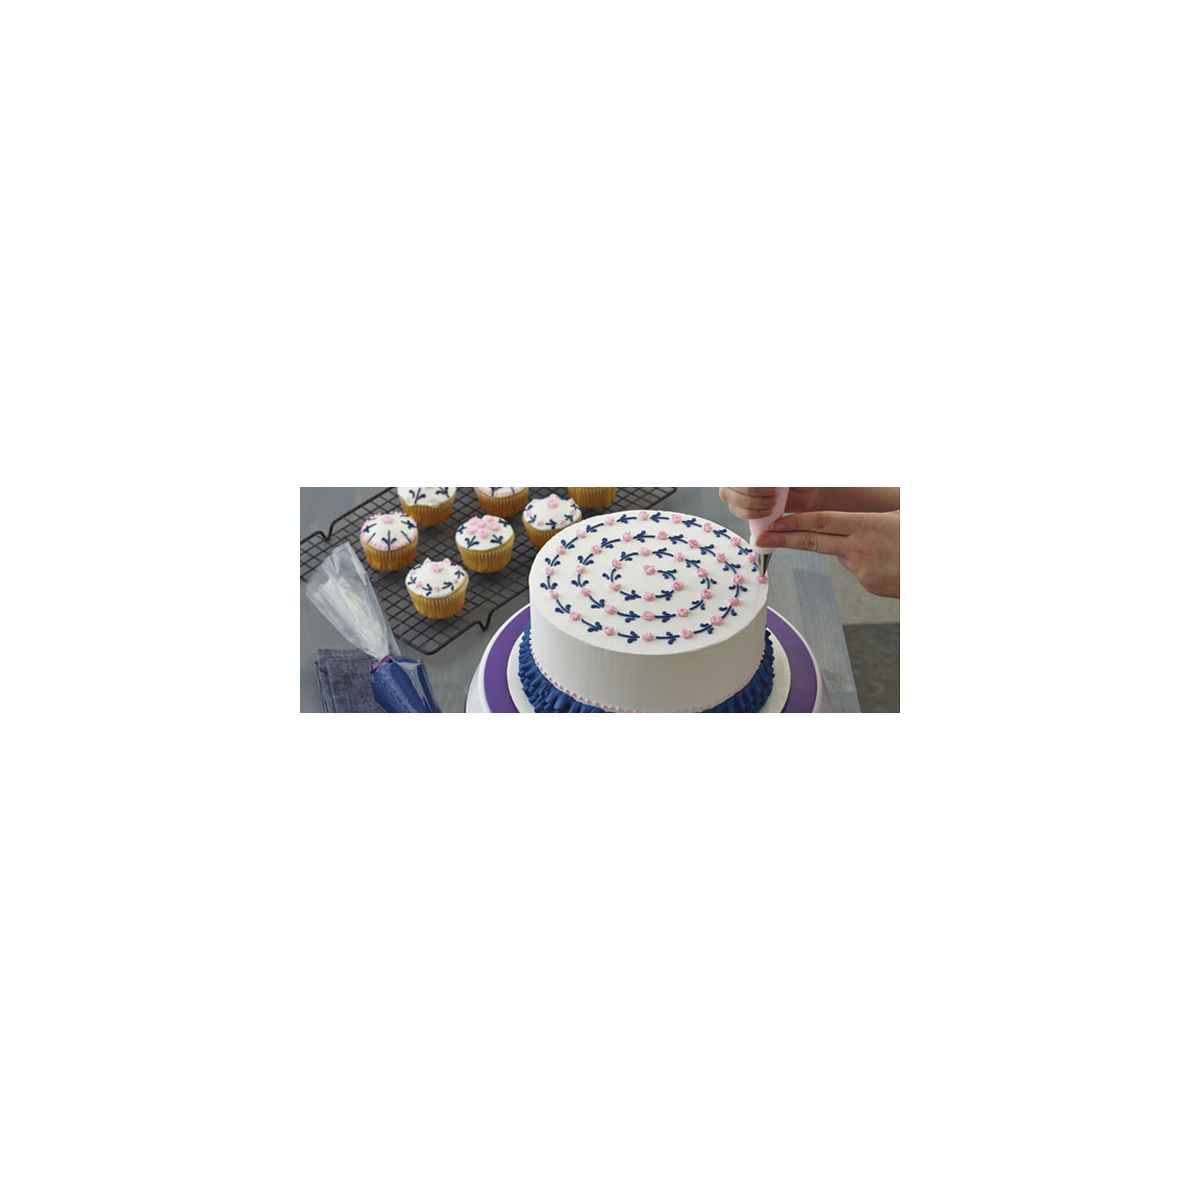 Complete Douchecabine Gamma.Supplier Of All Your Baking And Cake Decorating Products